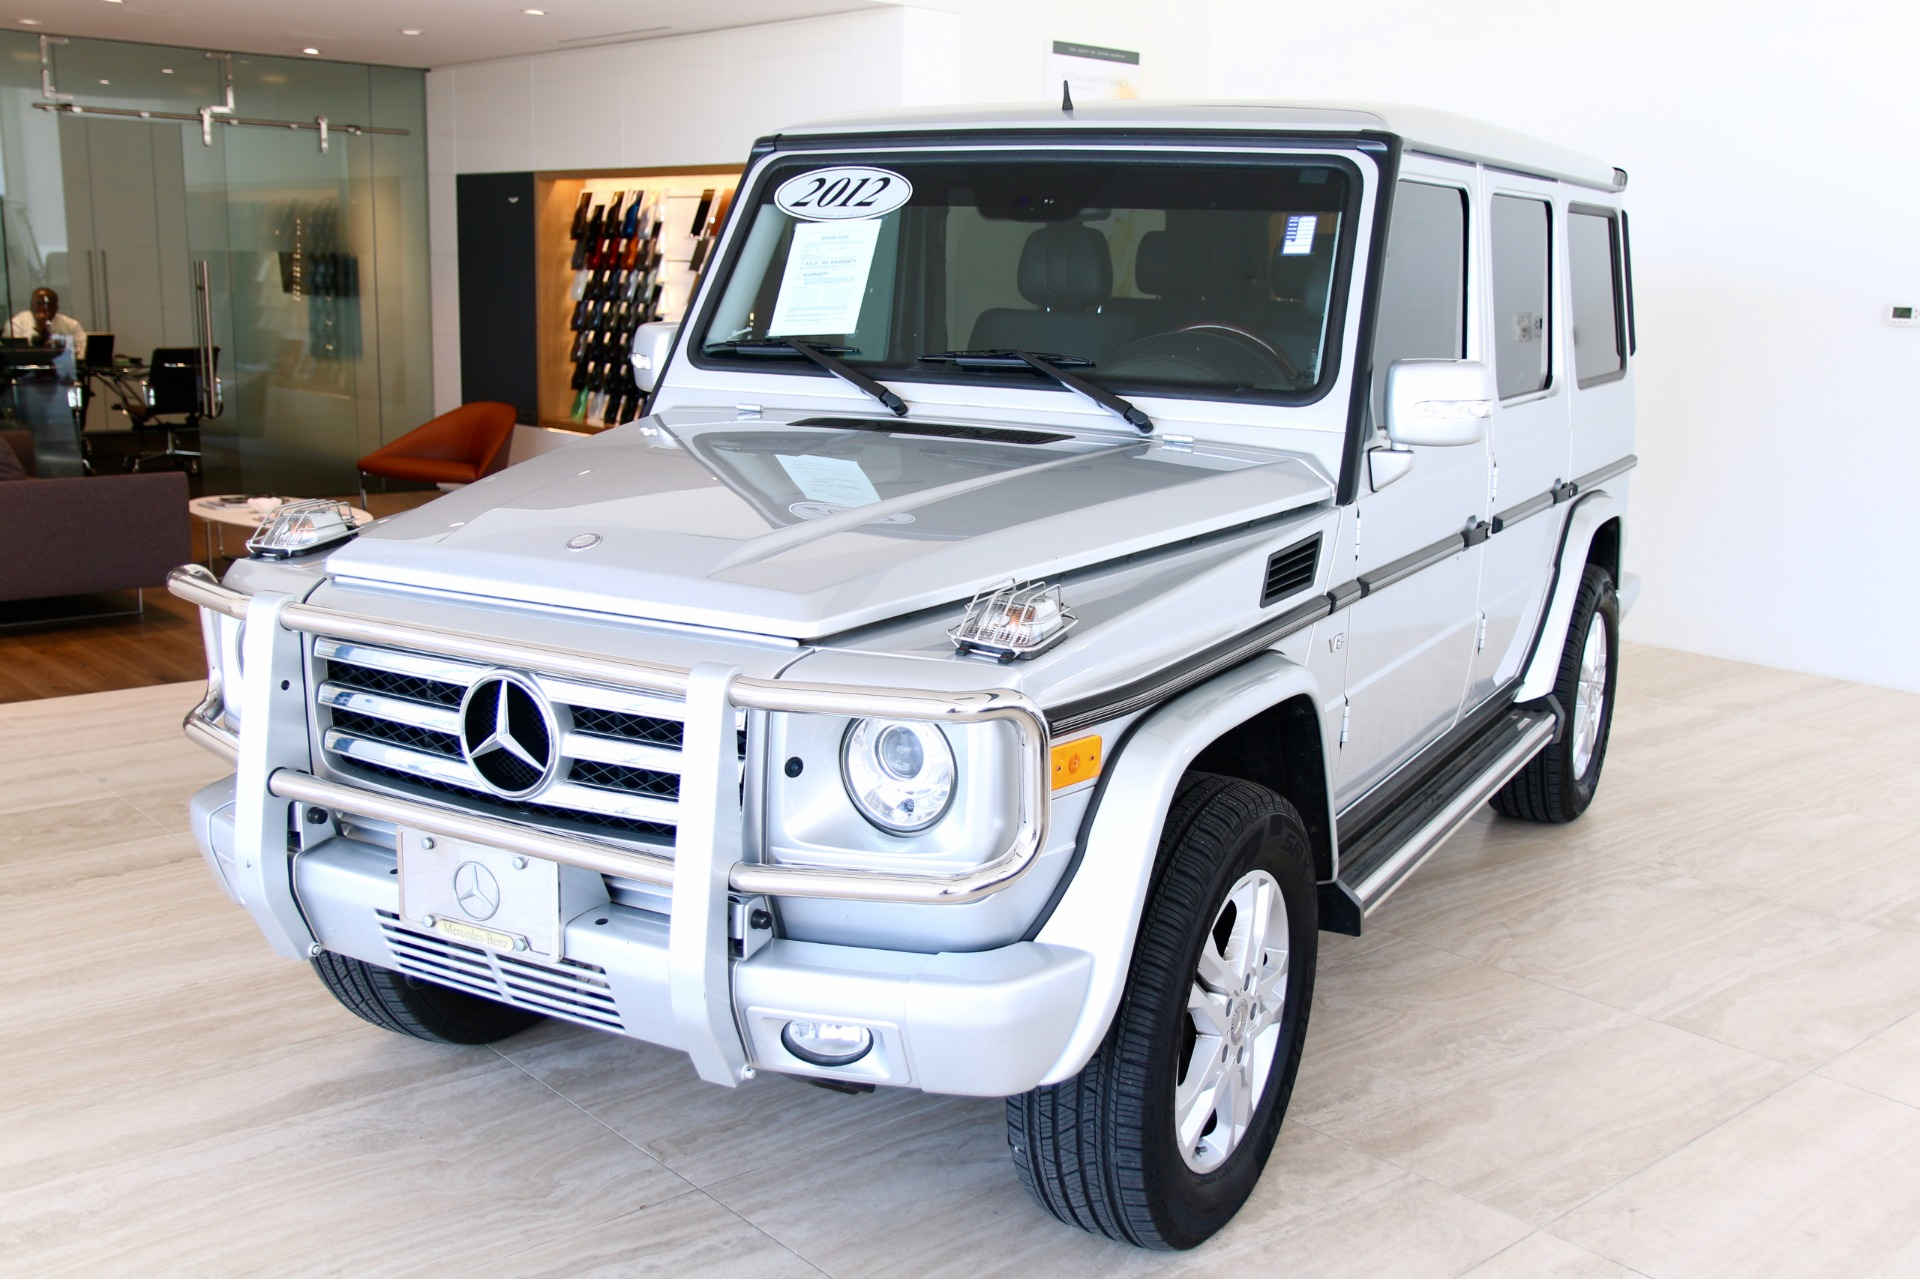 2012 mercedes benz g class g 550 stock 5w004329c for for Mercedes benz dealers in va